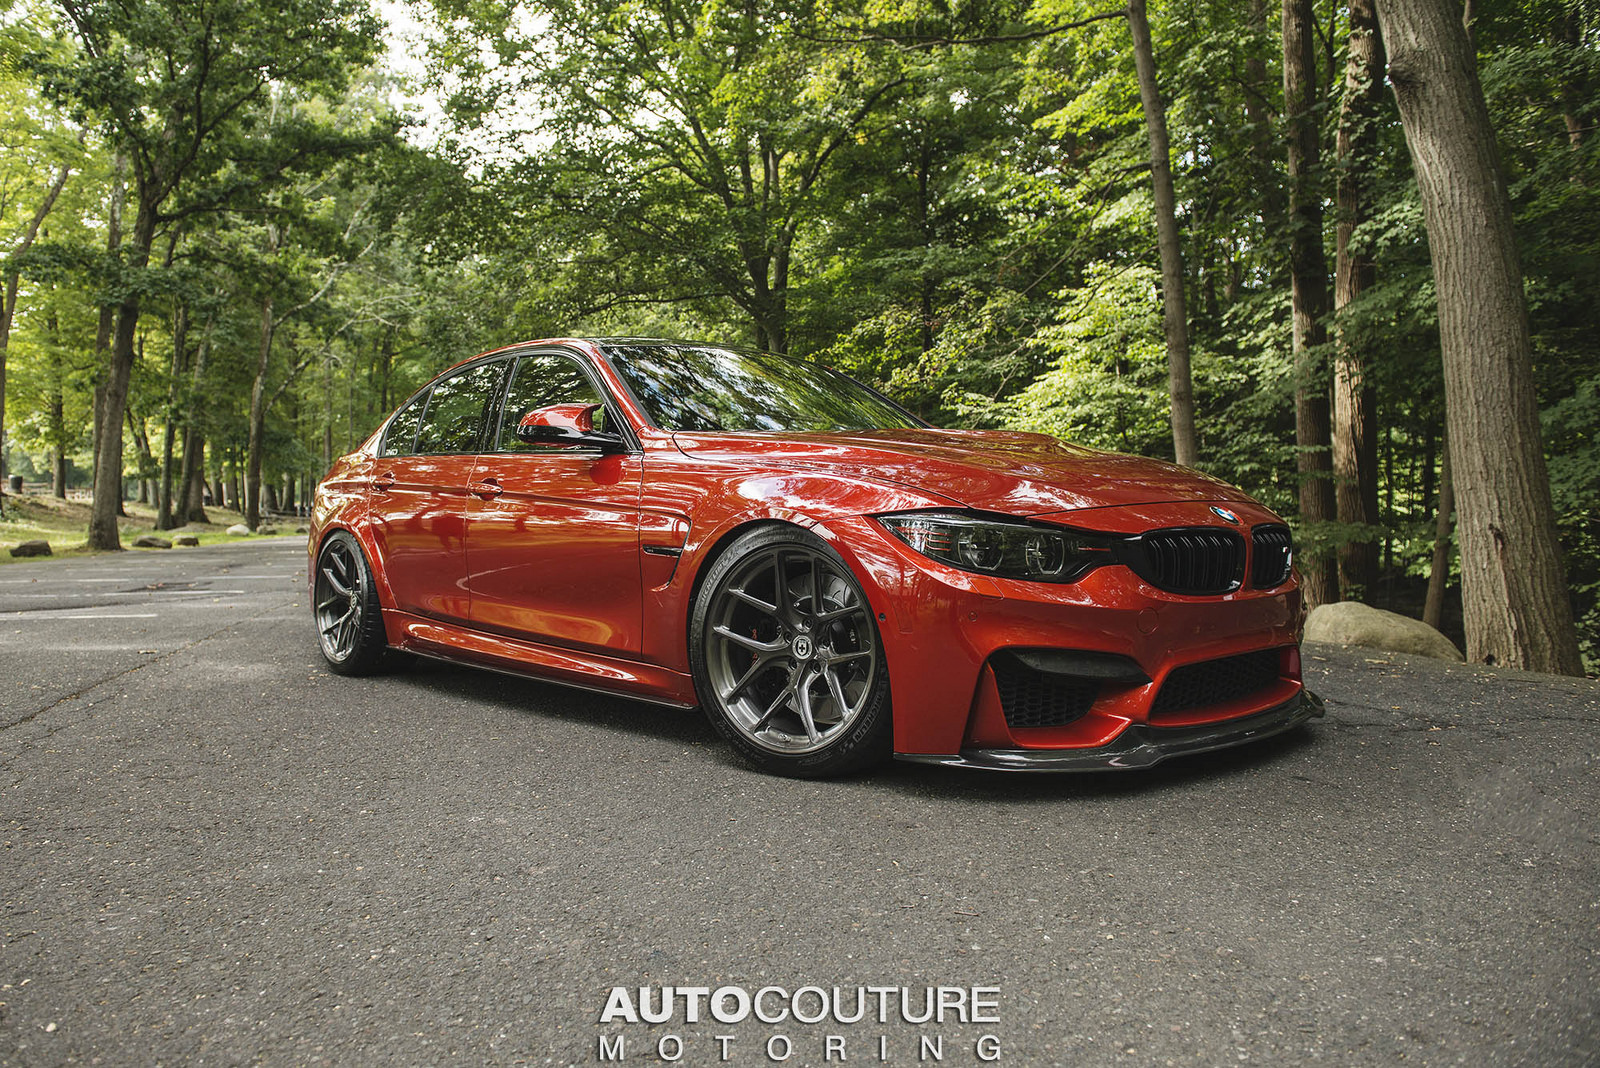 f80-bmw-m3-by-autocouture-motoring-3